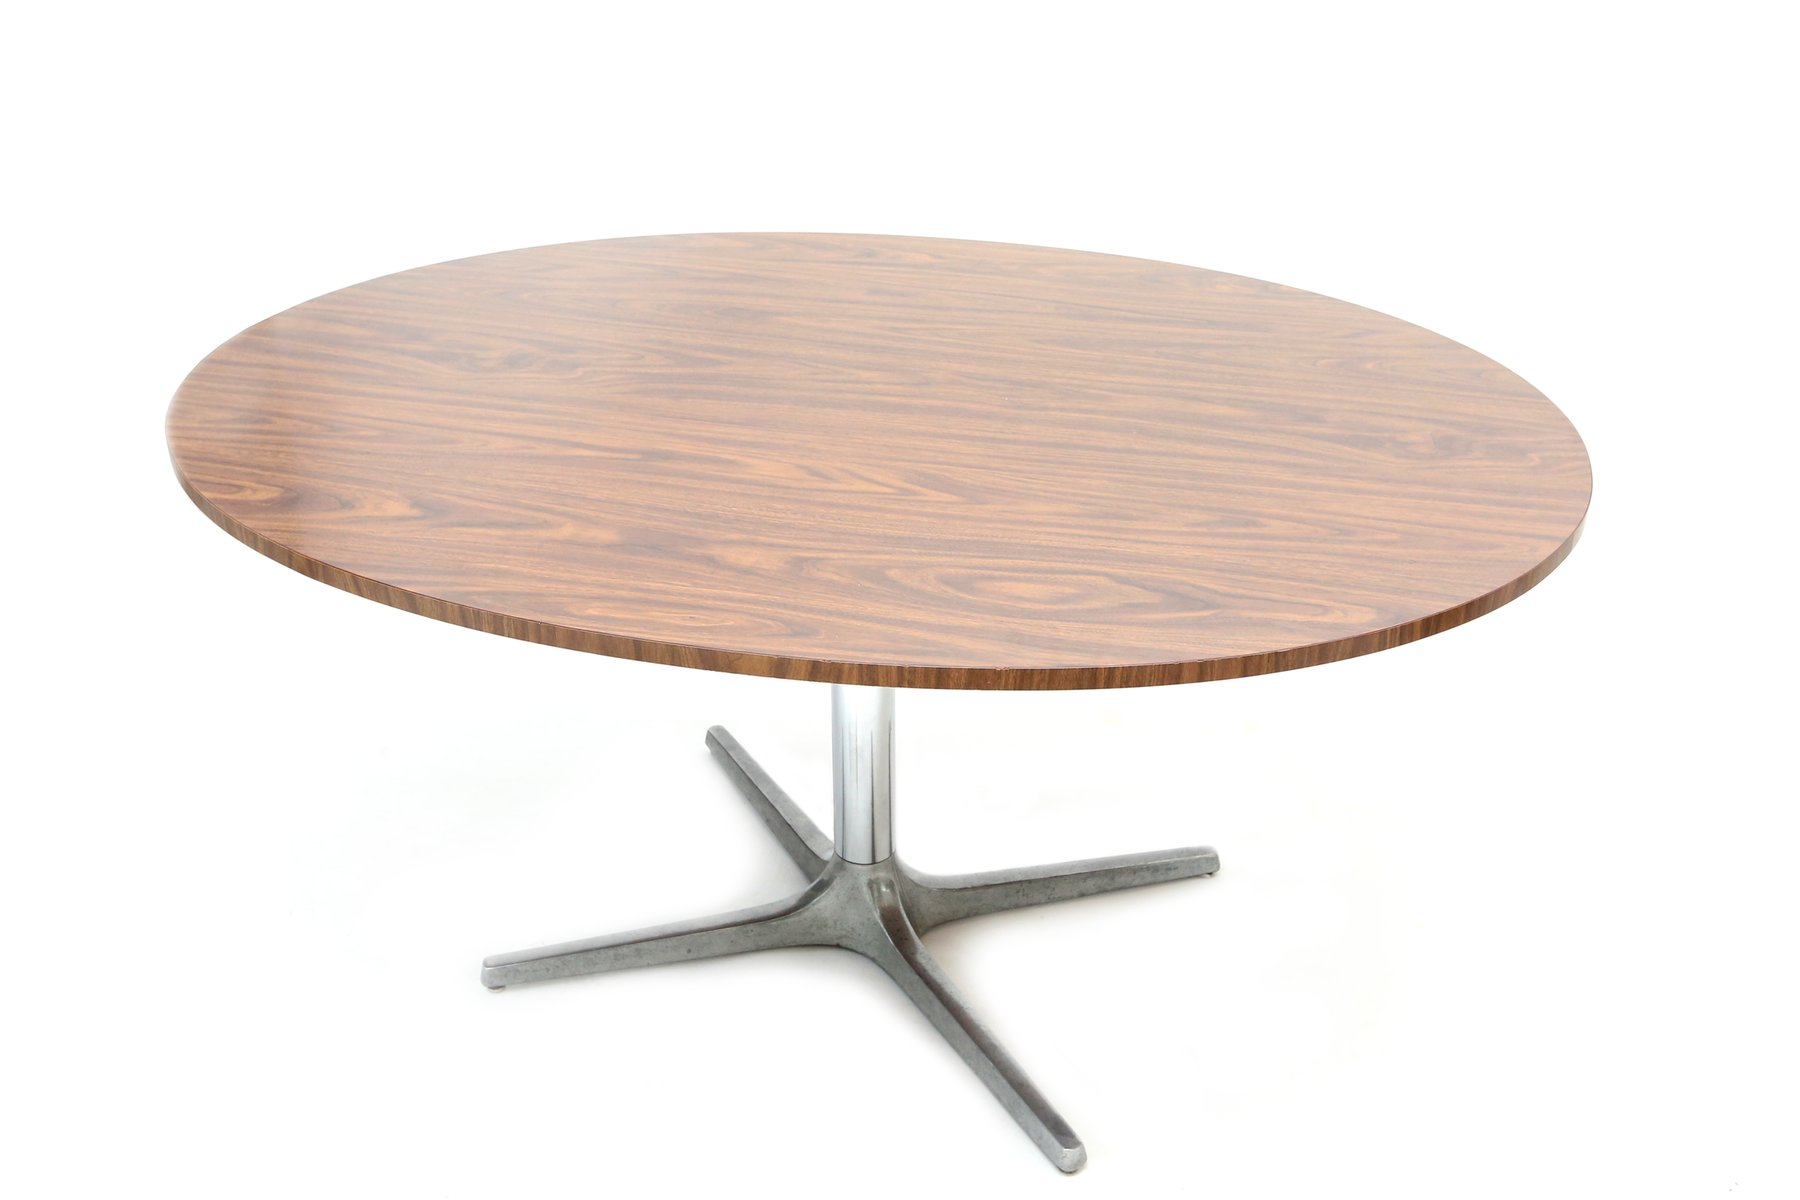 Chromcraft Dining Room Furniture american star trek dining table from chromcraft, 1960s for sale at